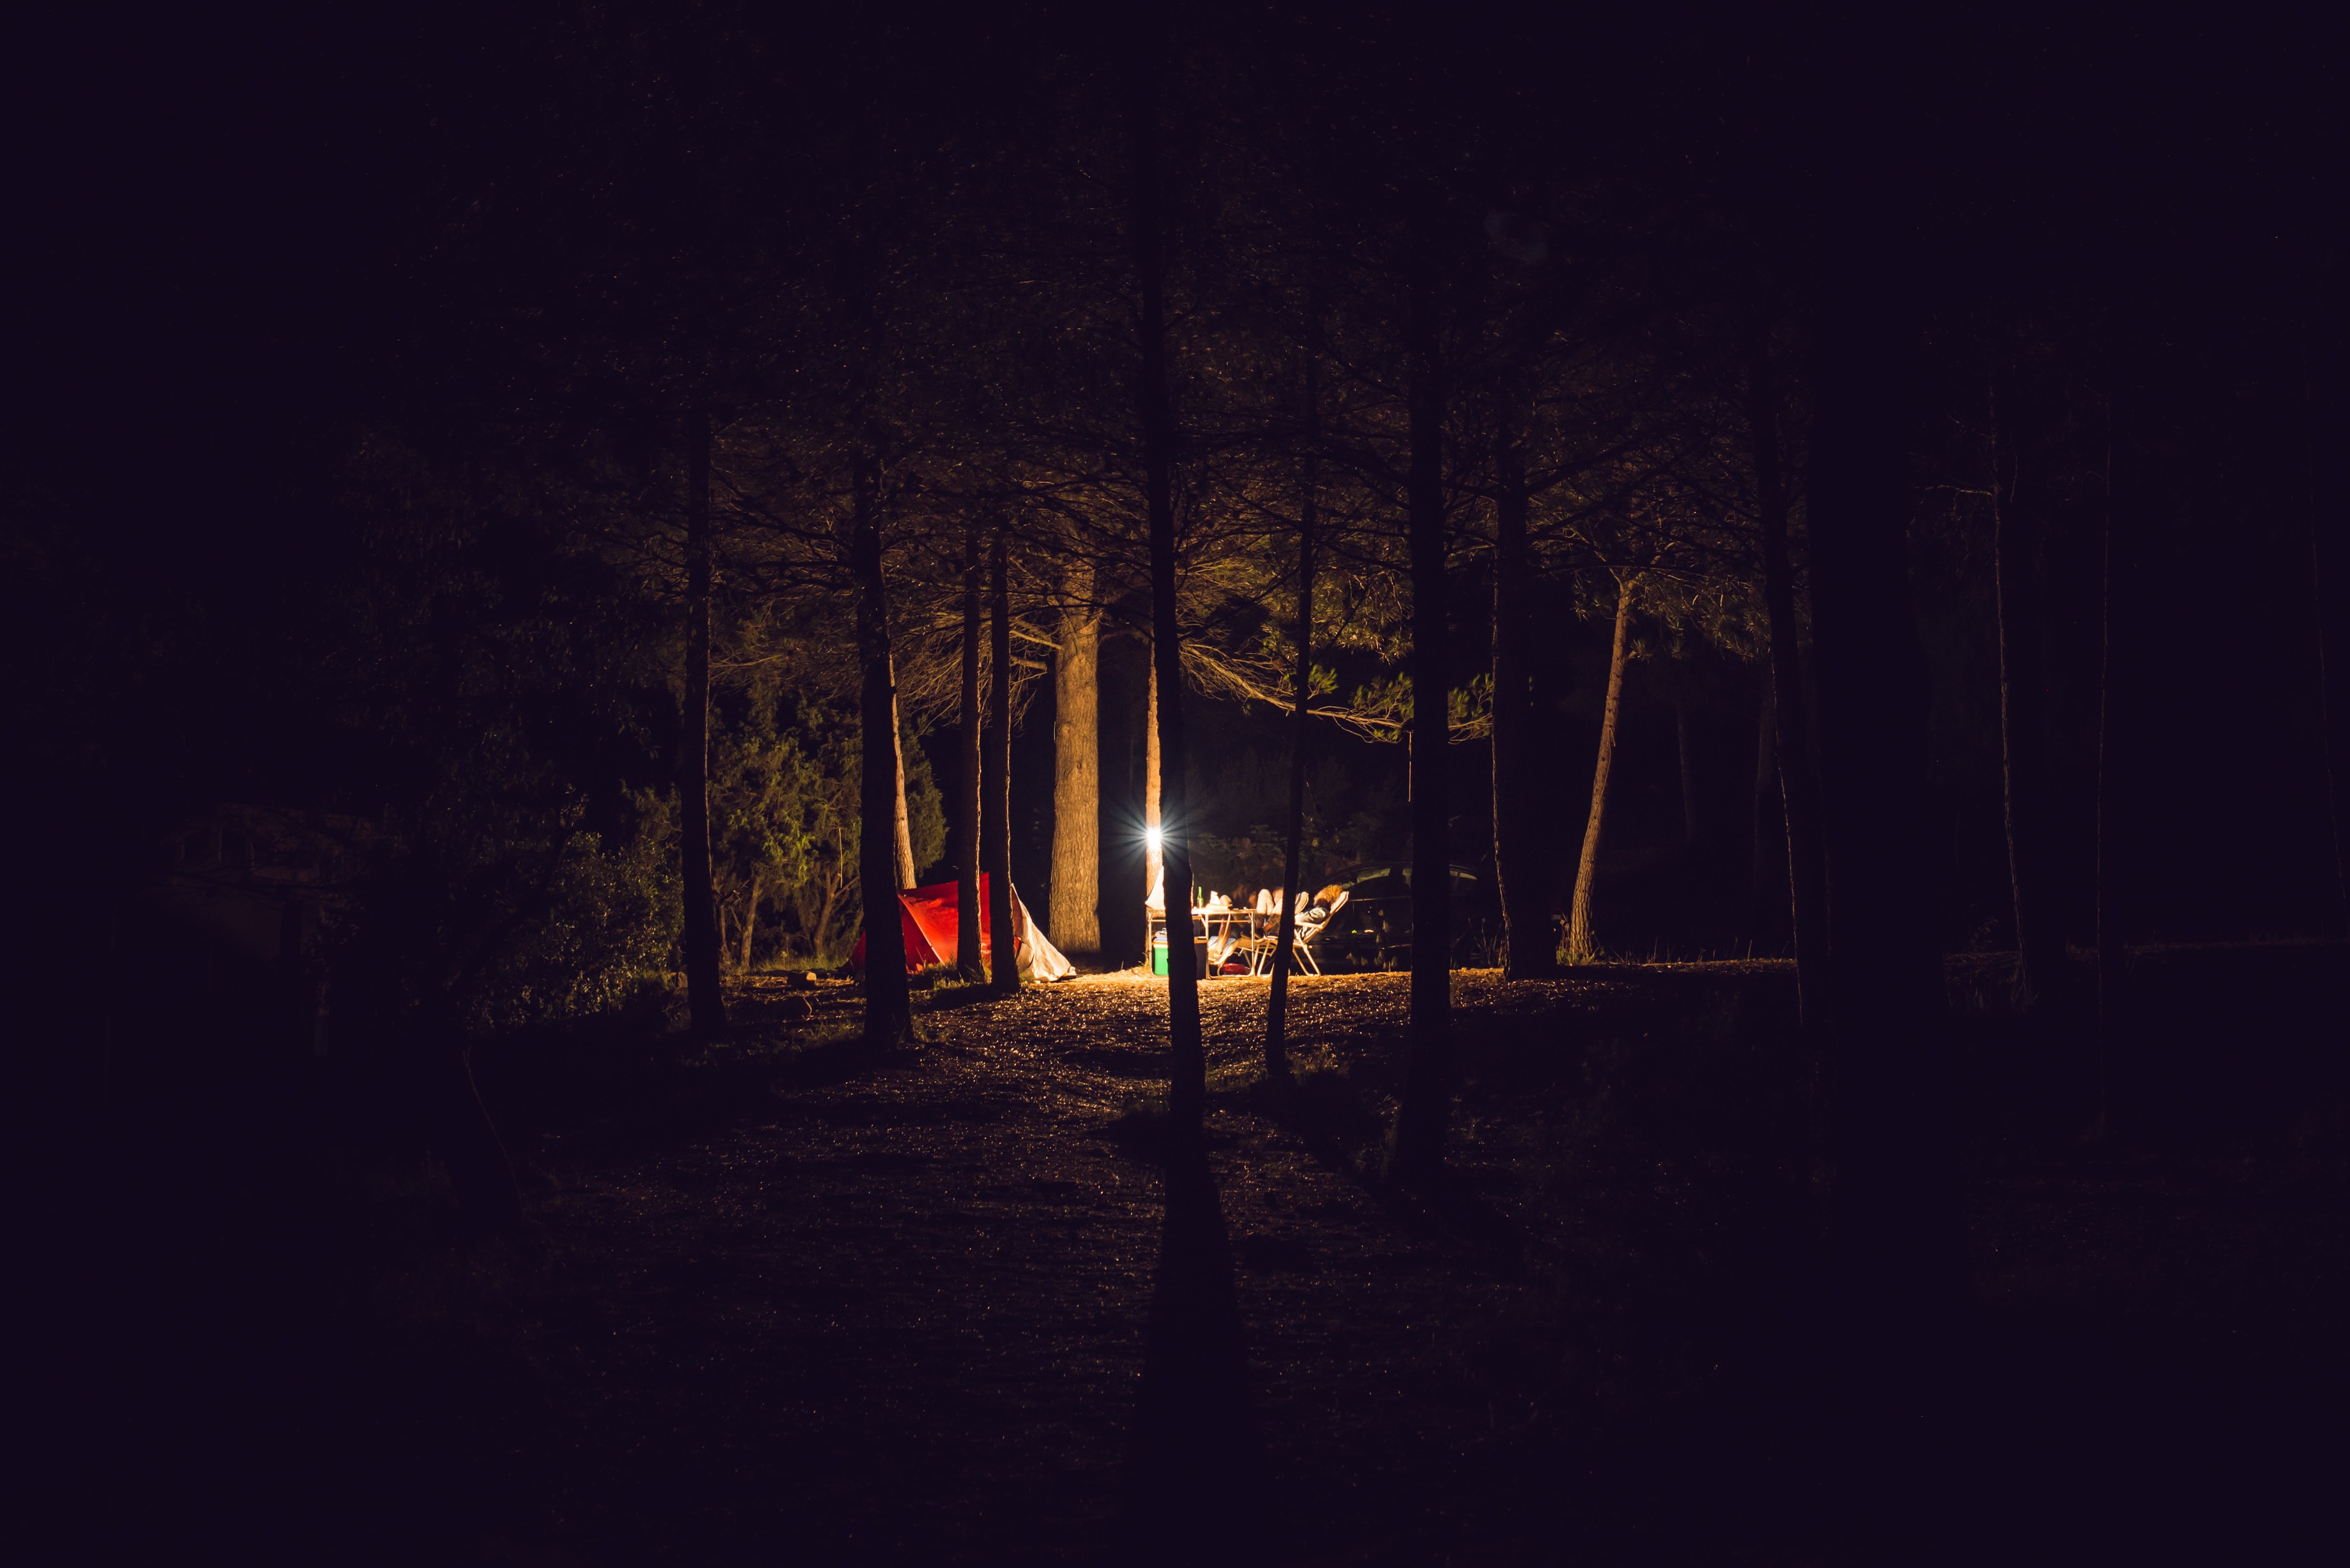 red camping tent under trees at night time